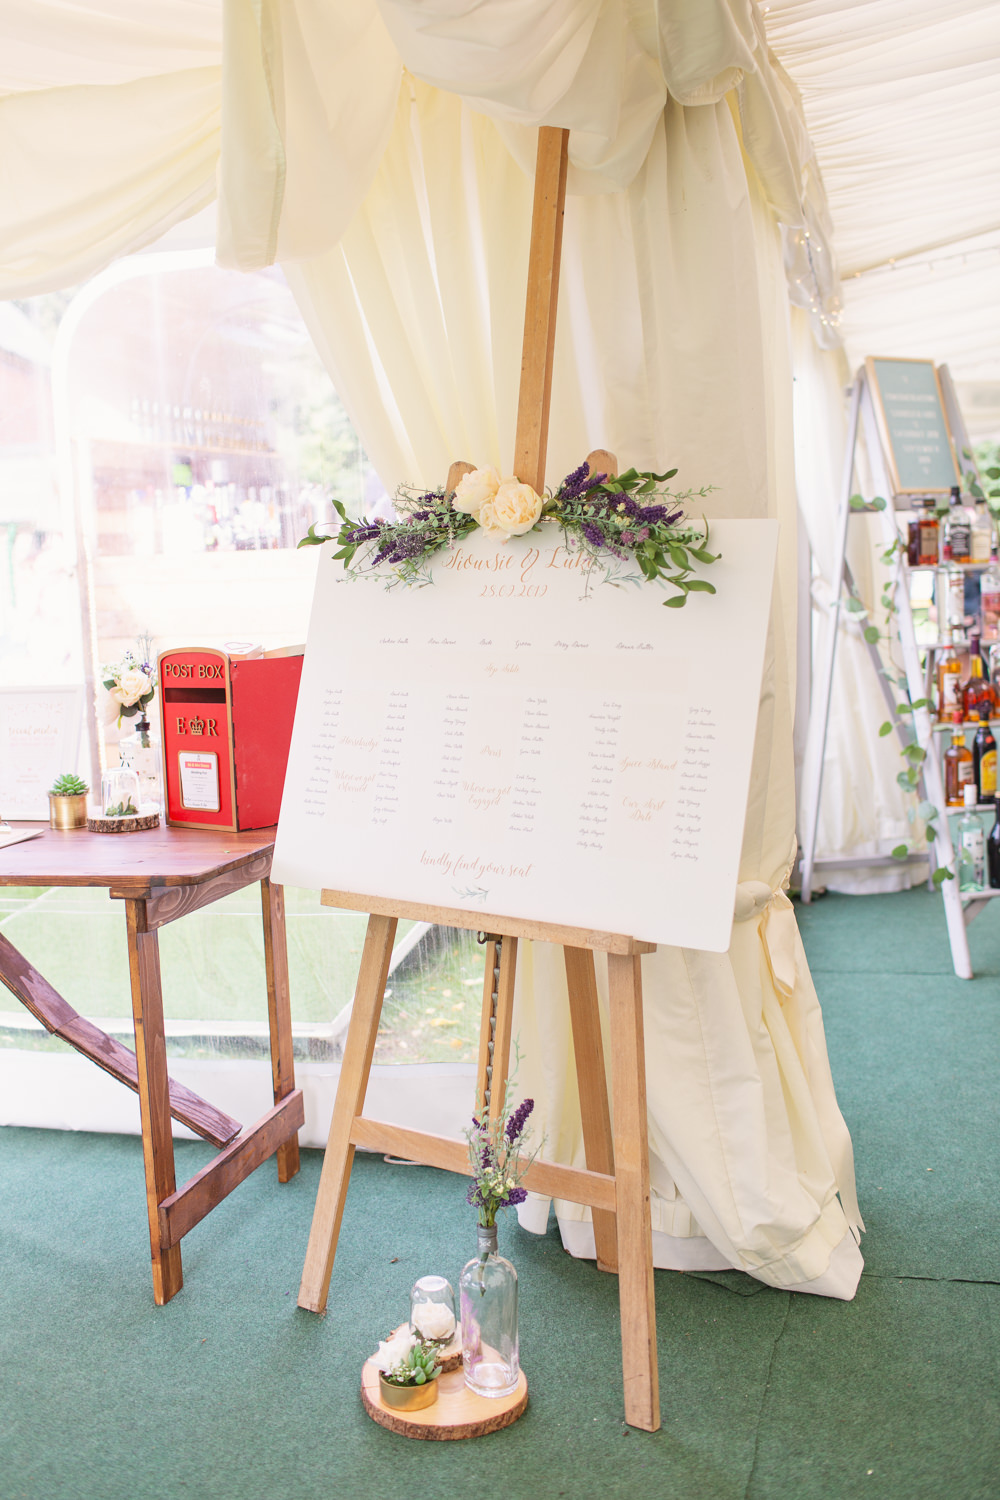 Table Plan Seating Chart Easel Greenery Foliage Railway Station Wedding Cotton Candy Weddings